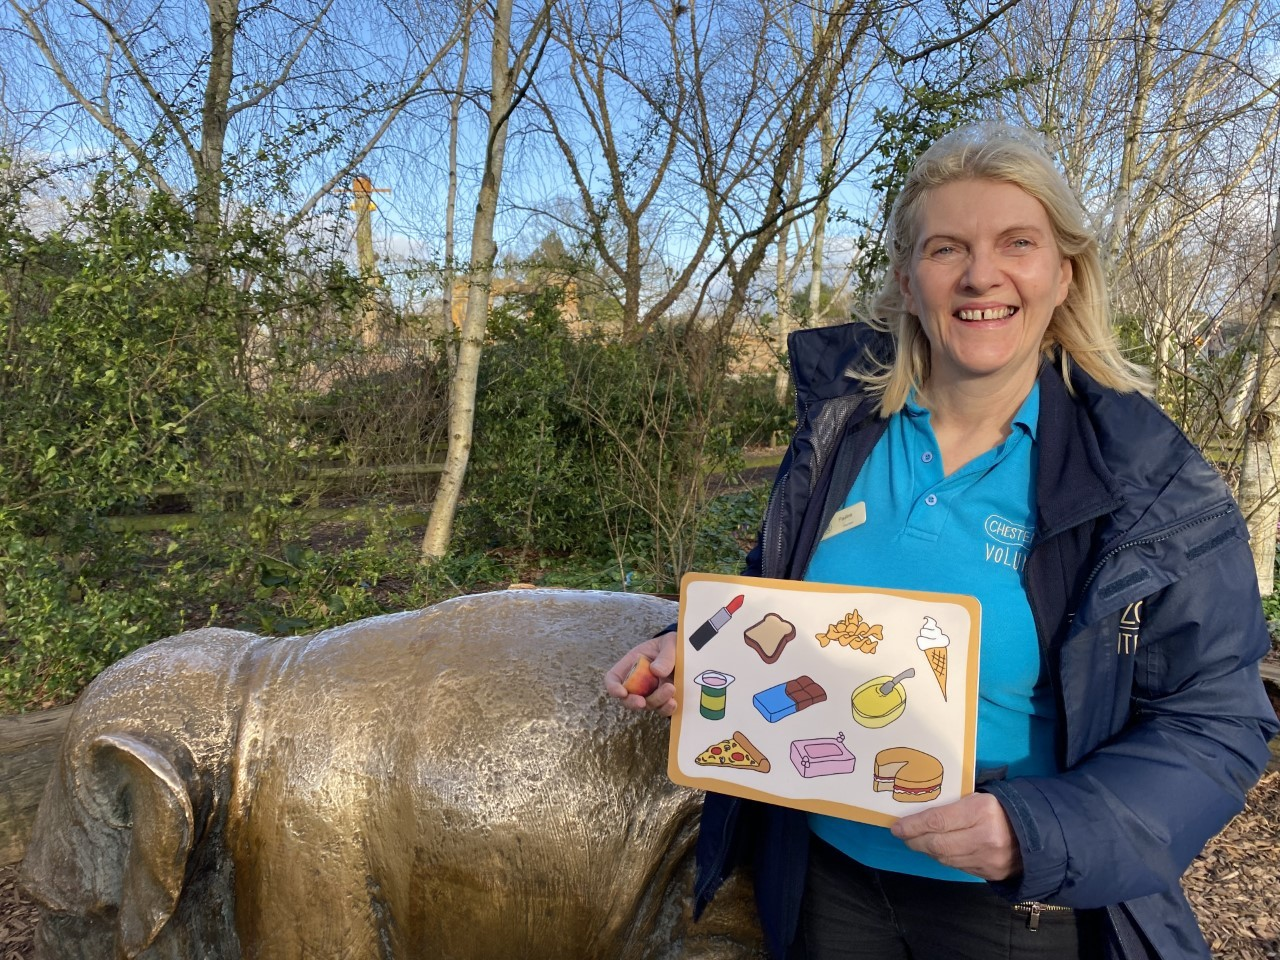 Chester Zoo volunteer Pauline helping to spread word about importance of sustainable palm oil